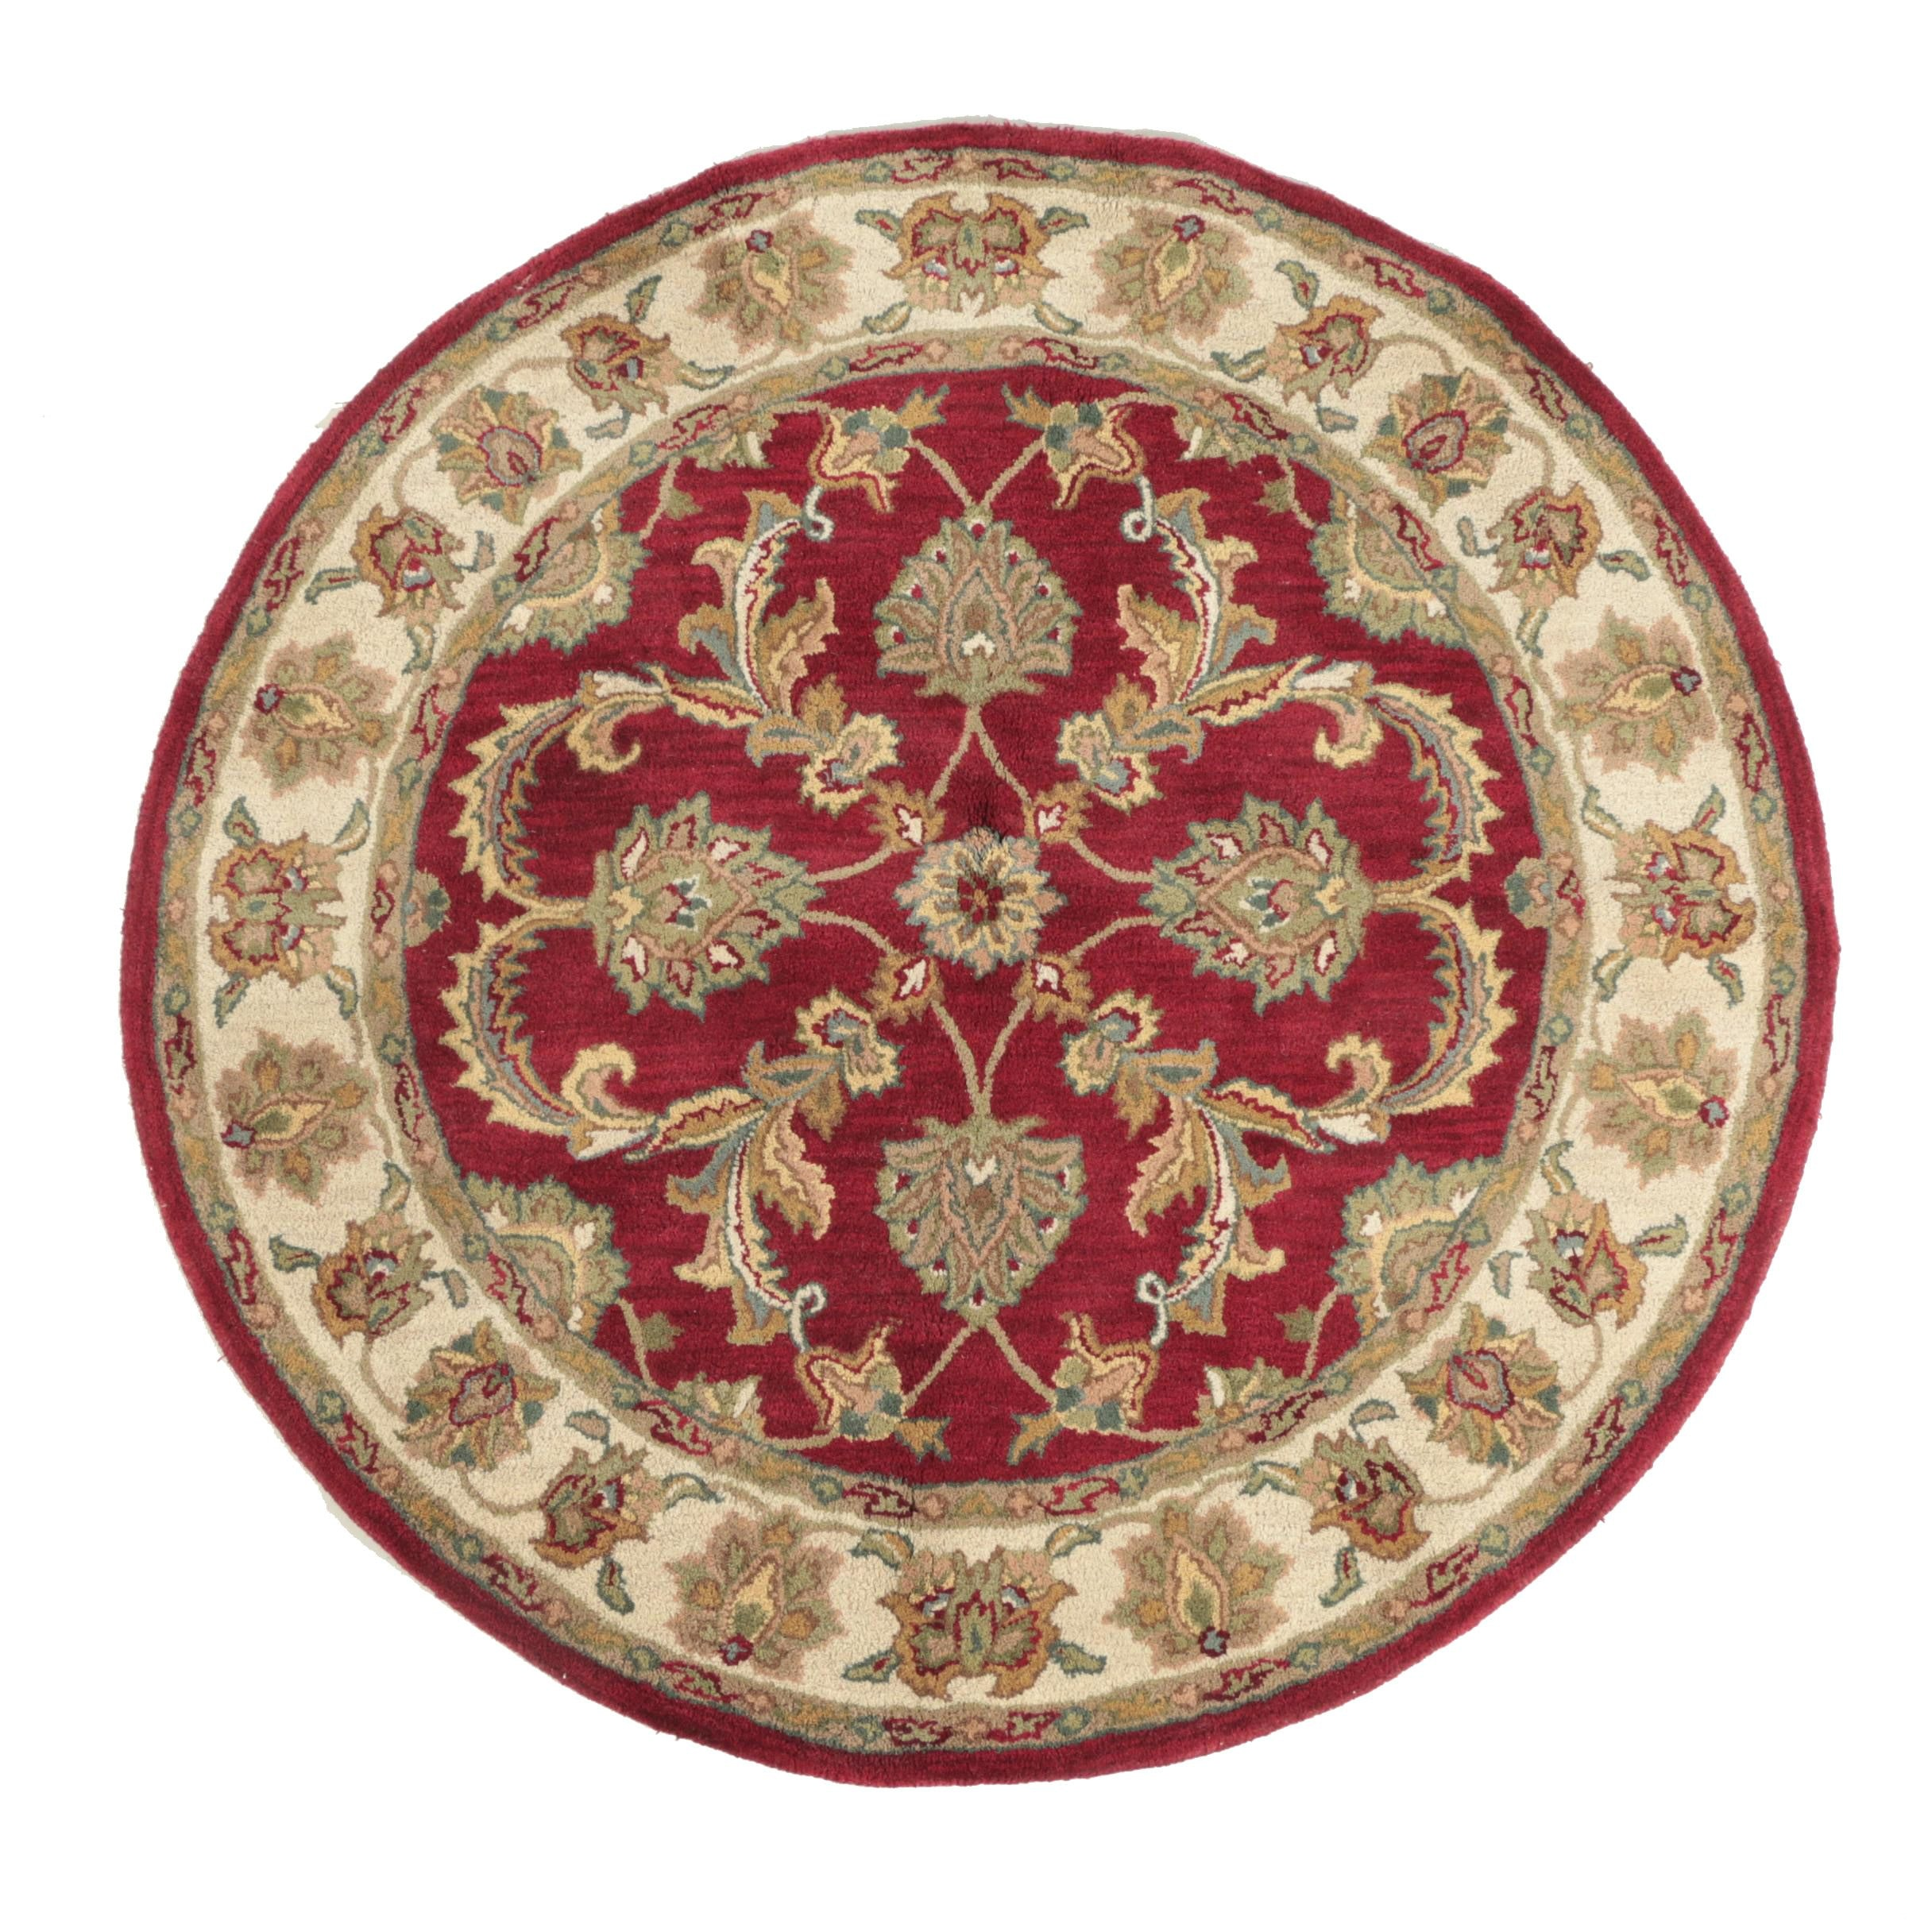 Hand-Tufted Indian Agra-Style Round Wool Area Rug